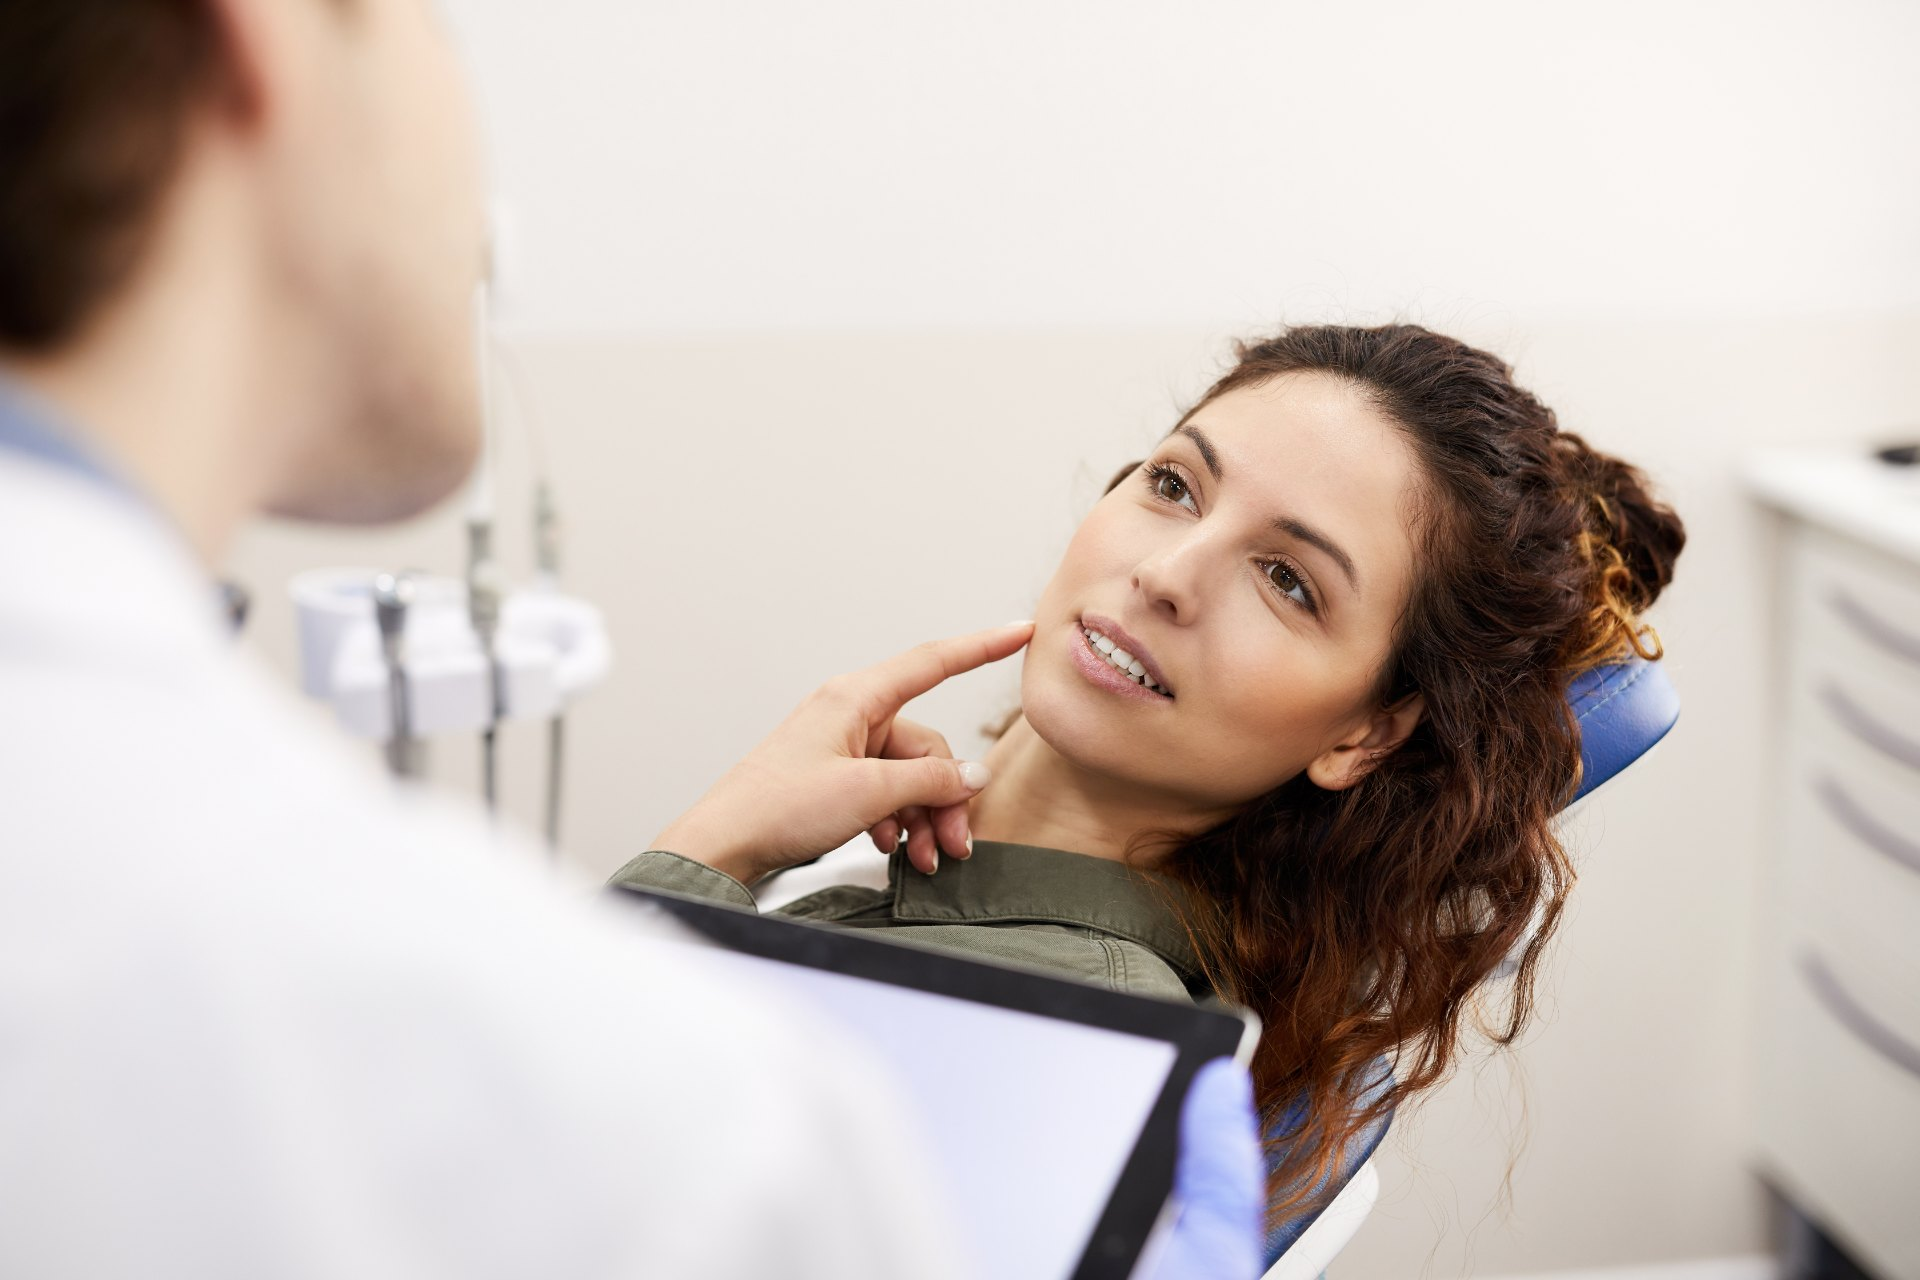 a woman patient pointing to the right side of her face as the dentist examines her